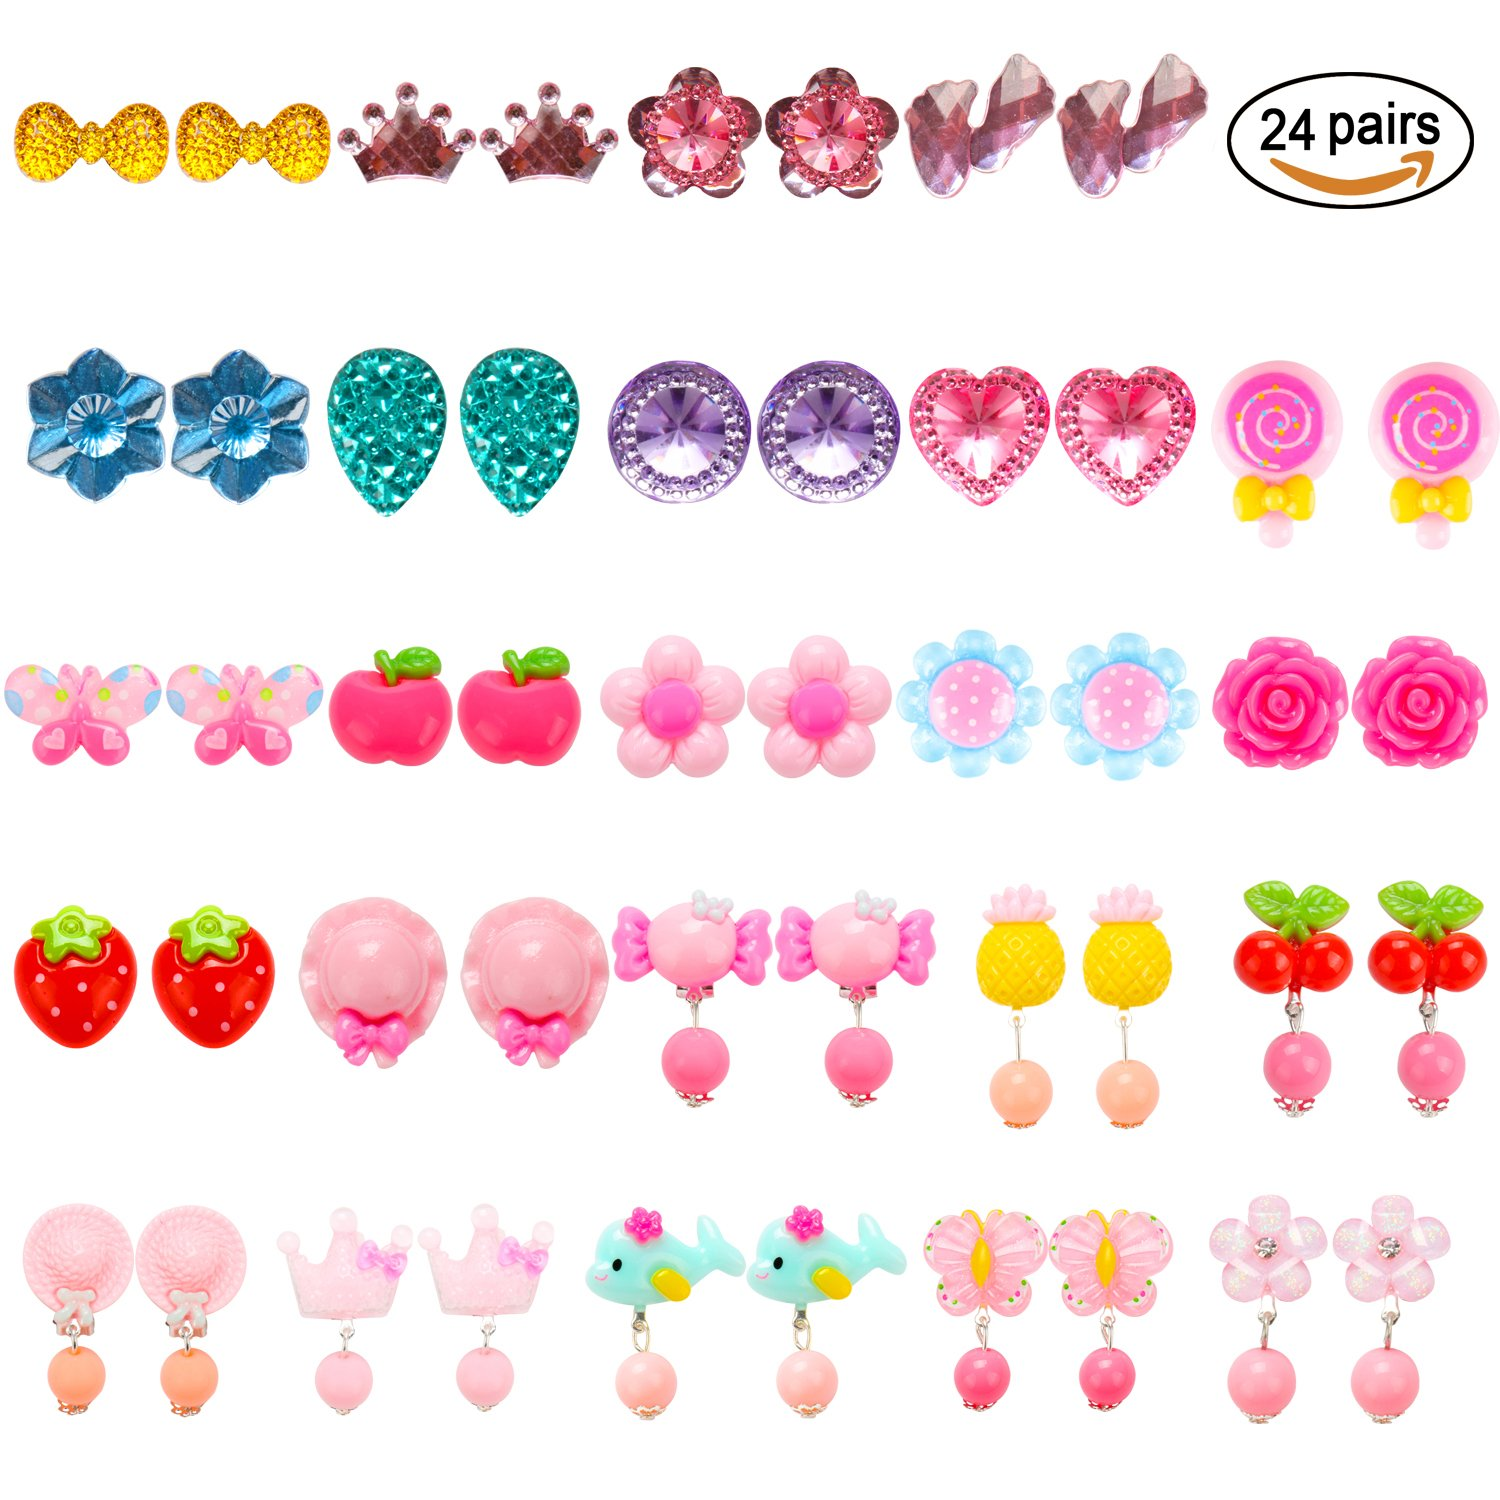 HaiMay 24 Pairs Clip-on Earrings Girls Play Earrings With Different Styles For Party Favor, All Packed in 3 Clear Boxes